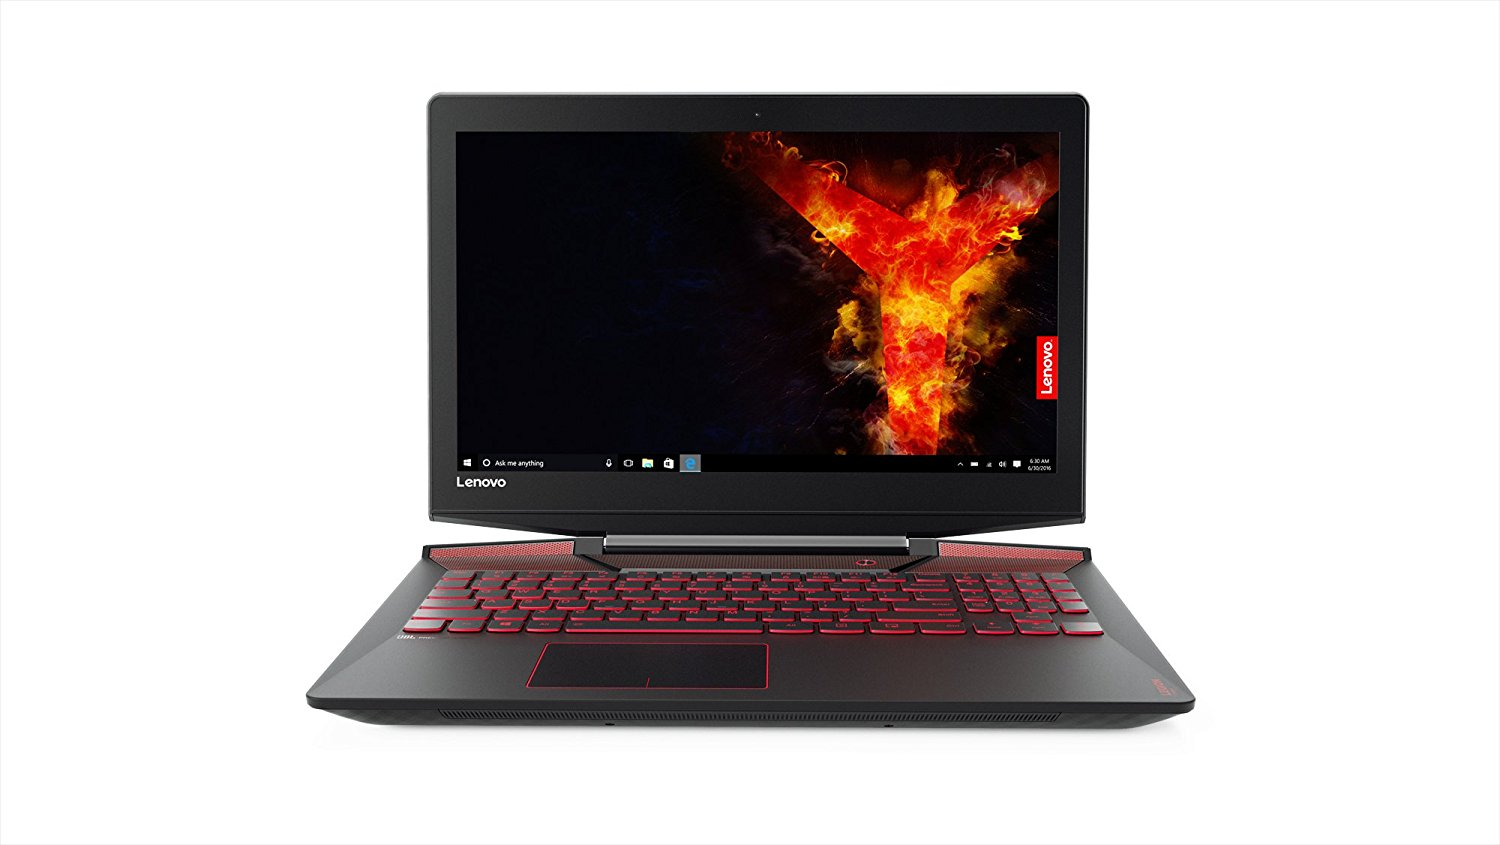 "Lenovo Legion Y720 - 15.6"" Traditional Laptop Computer Computer, Black (Intel Core i7-7700HQ / Nvidia GeForce GTX 1060 / 16GB / 1TB / 256GB / Windows 10 Signature Image) 80VR002HUS"